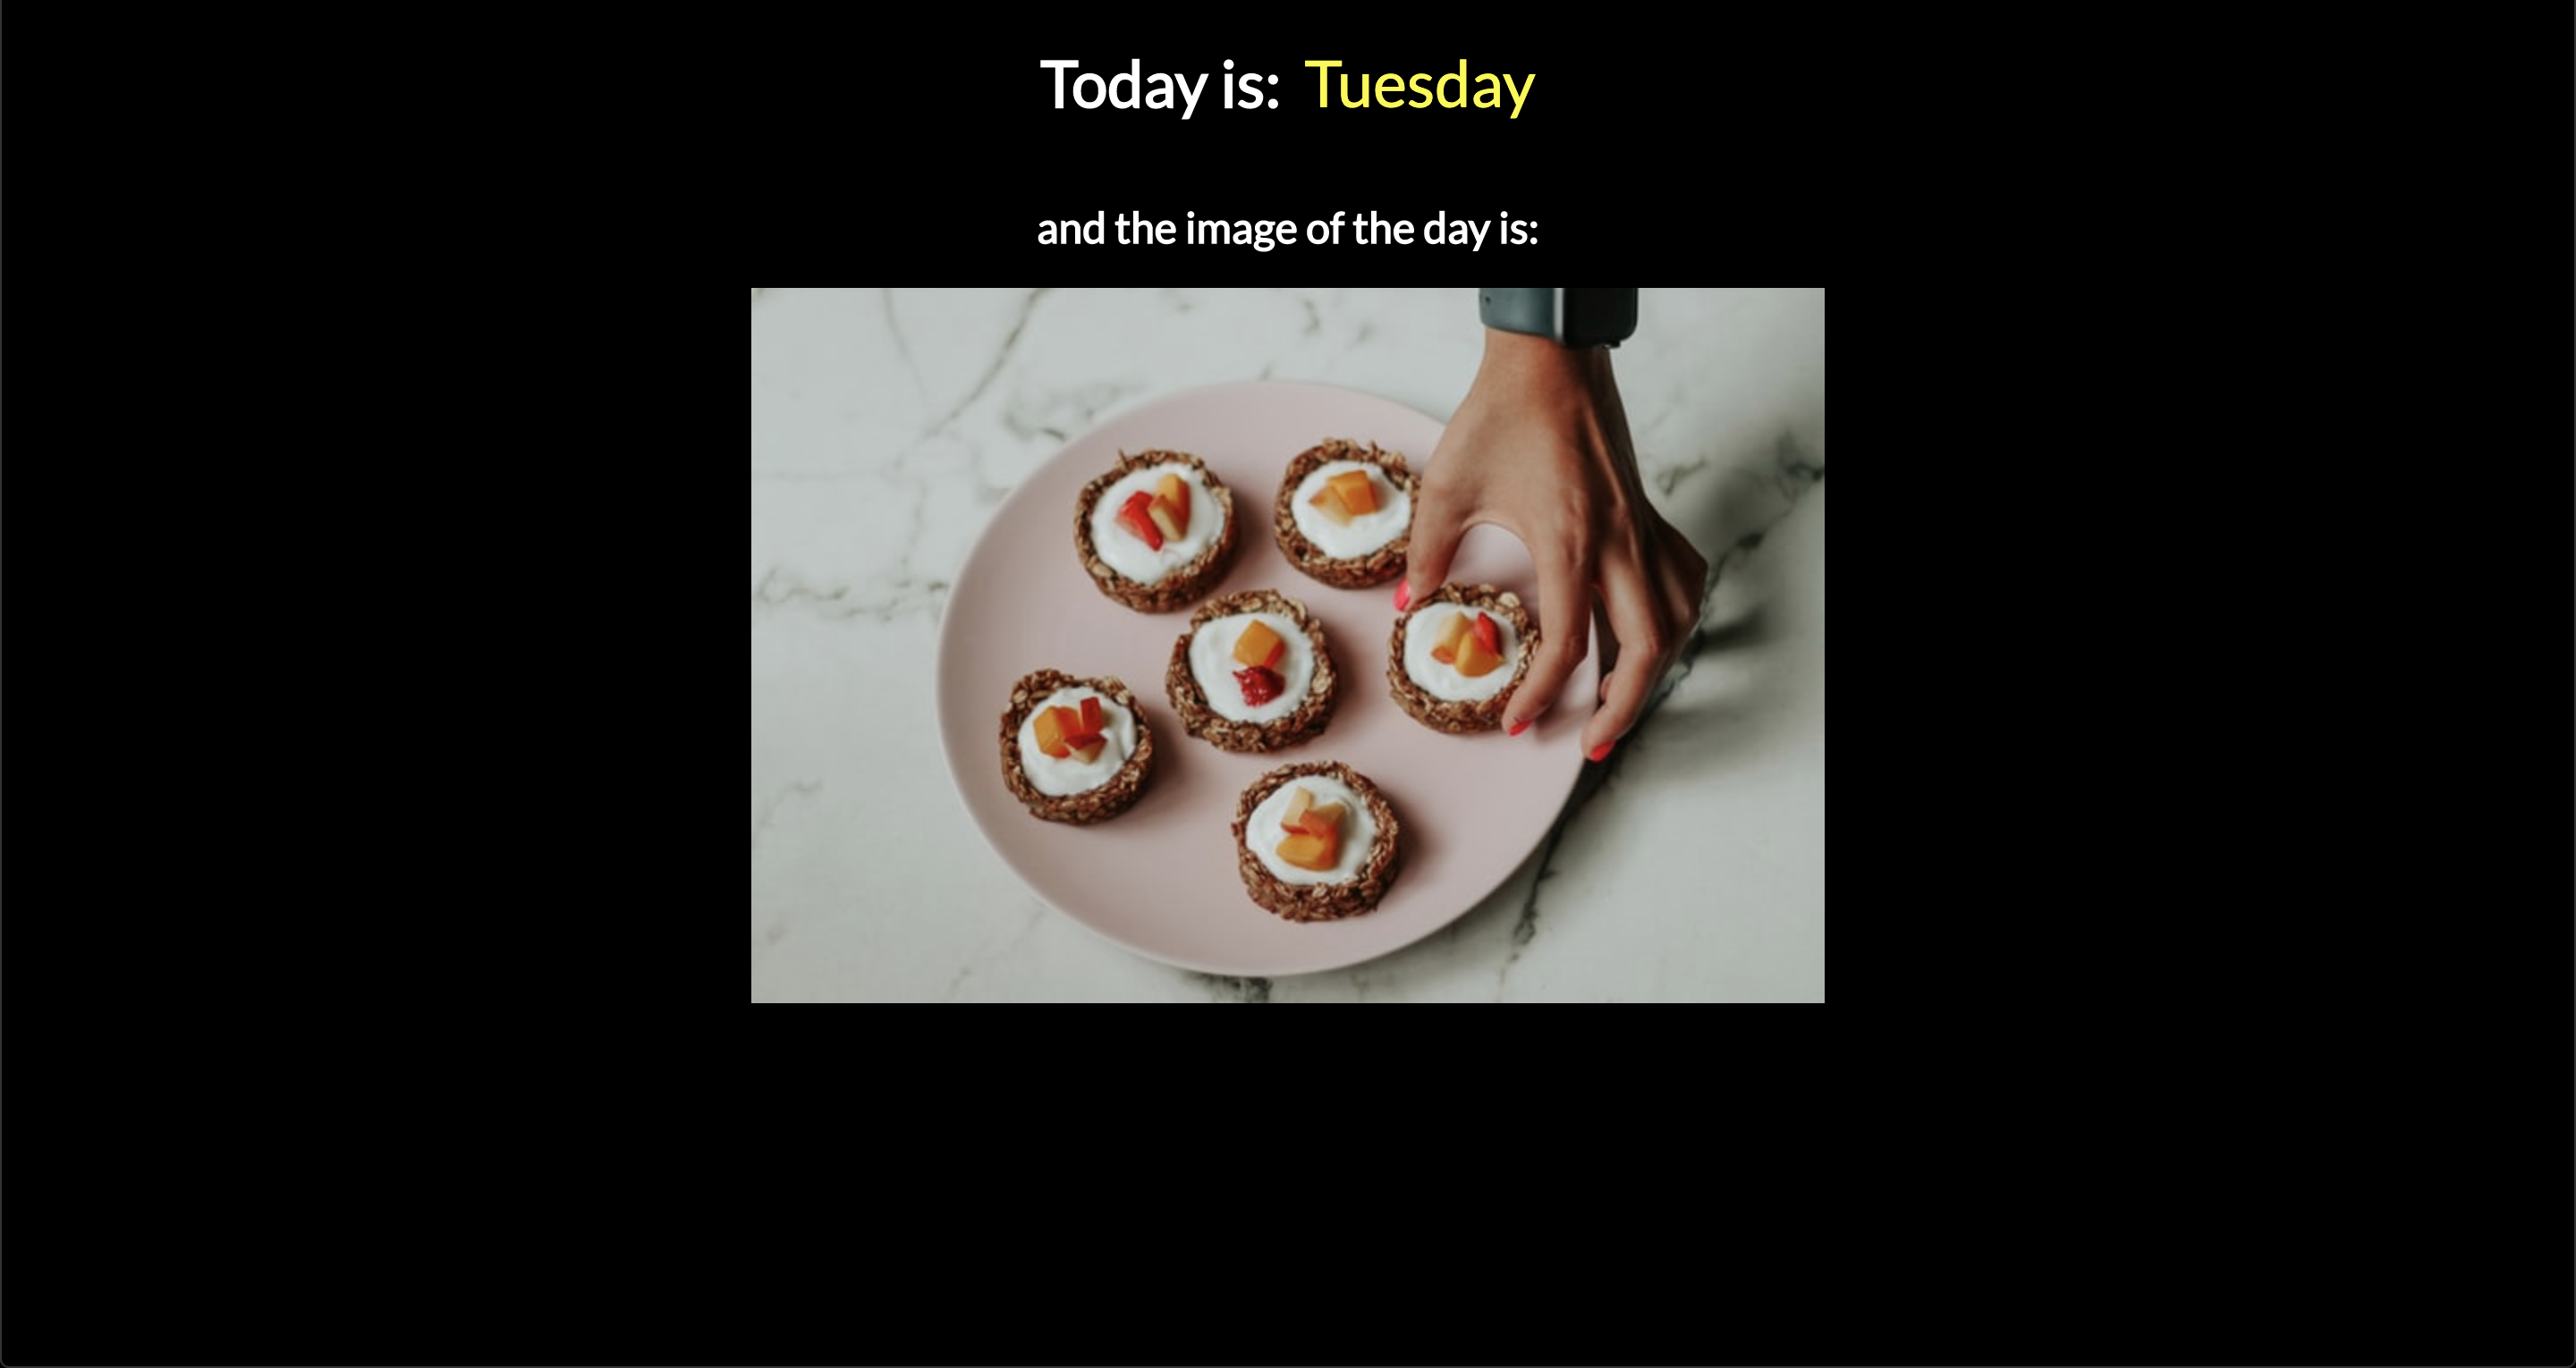 Webpage with black background, heading that includes the day of the week, and an image below.